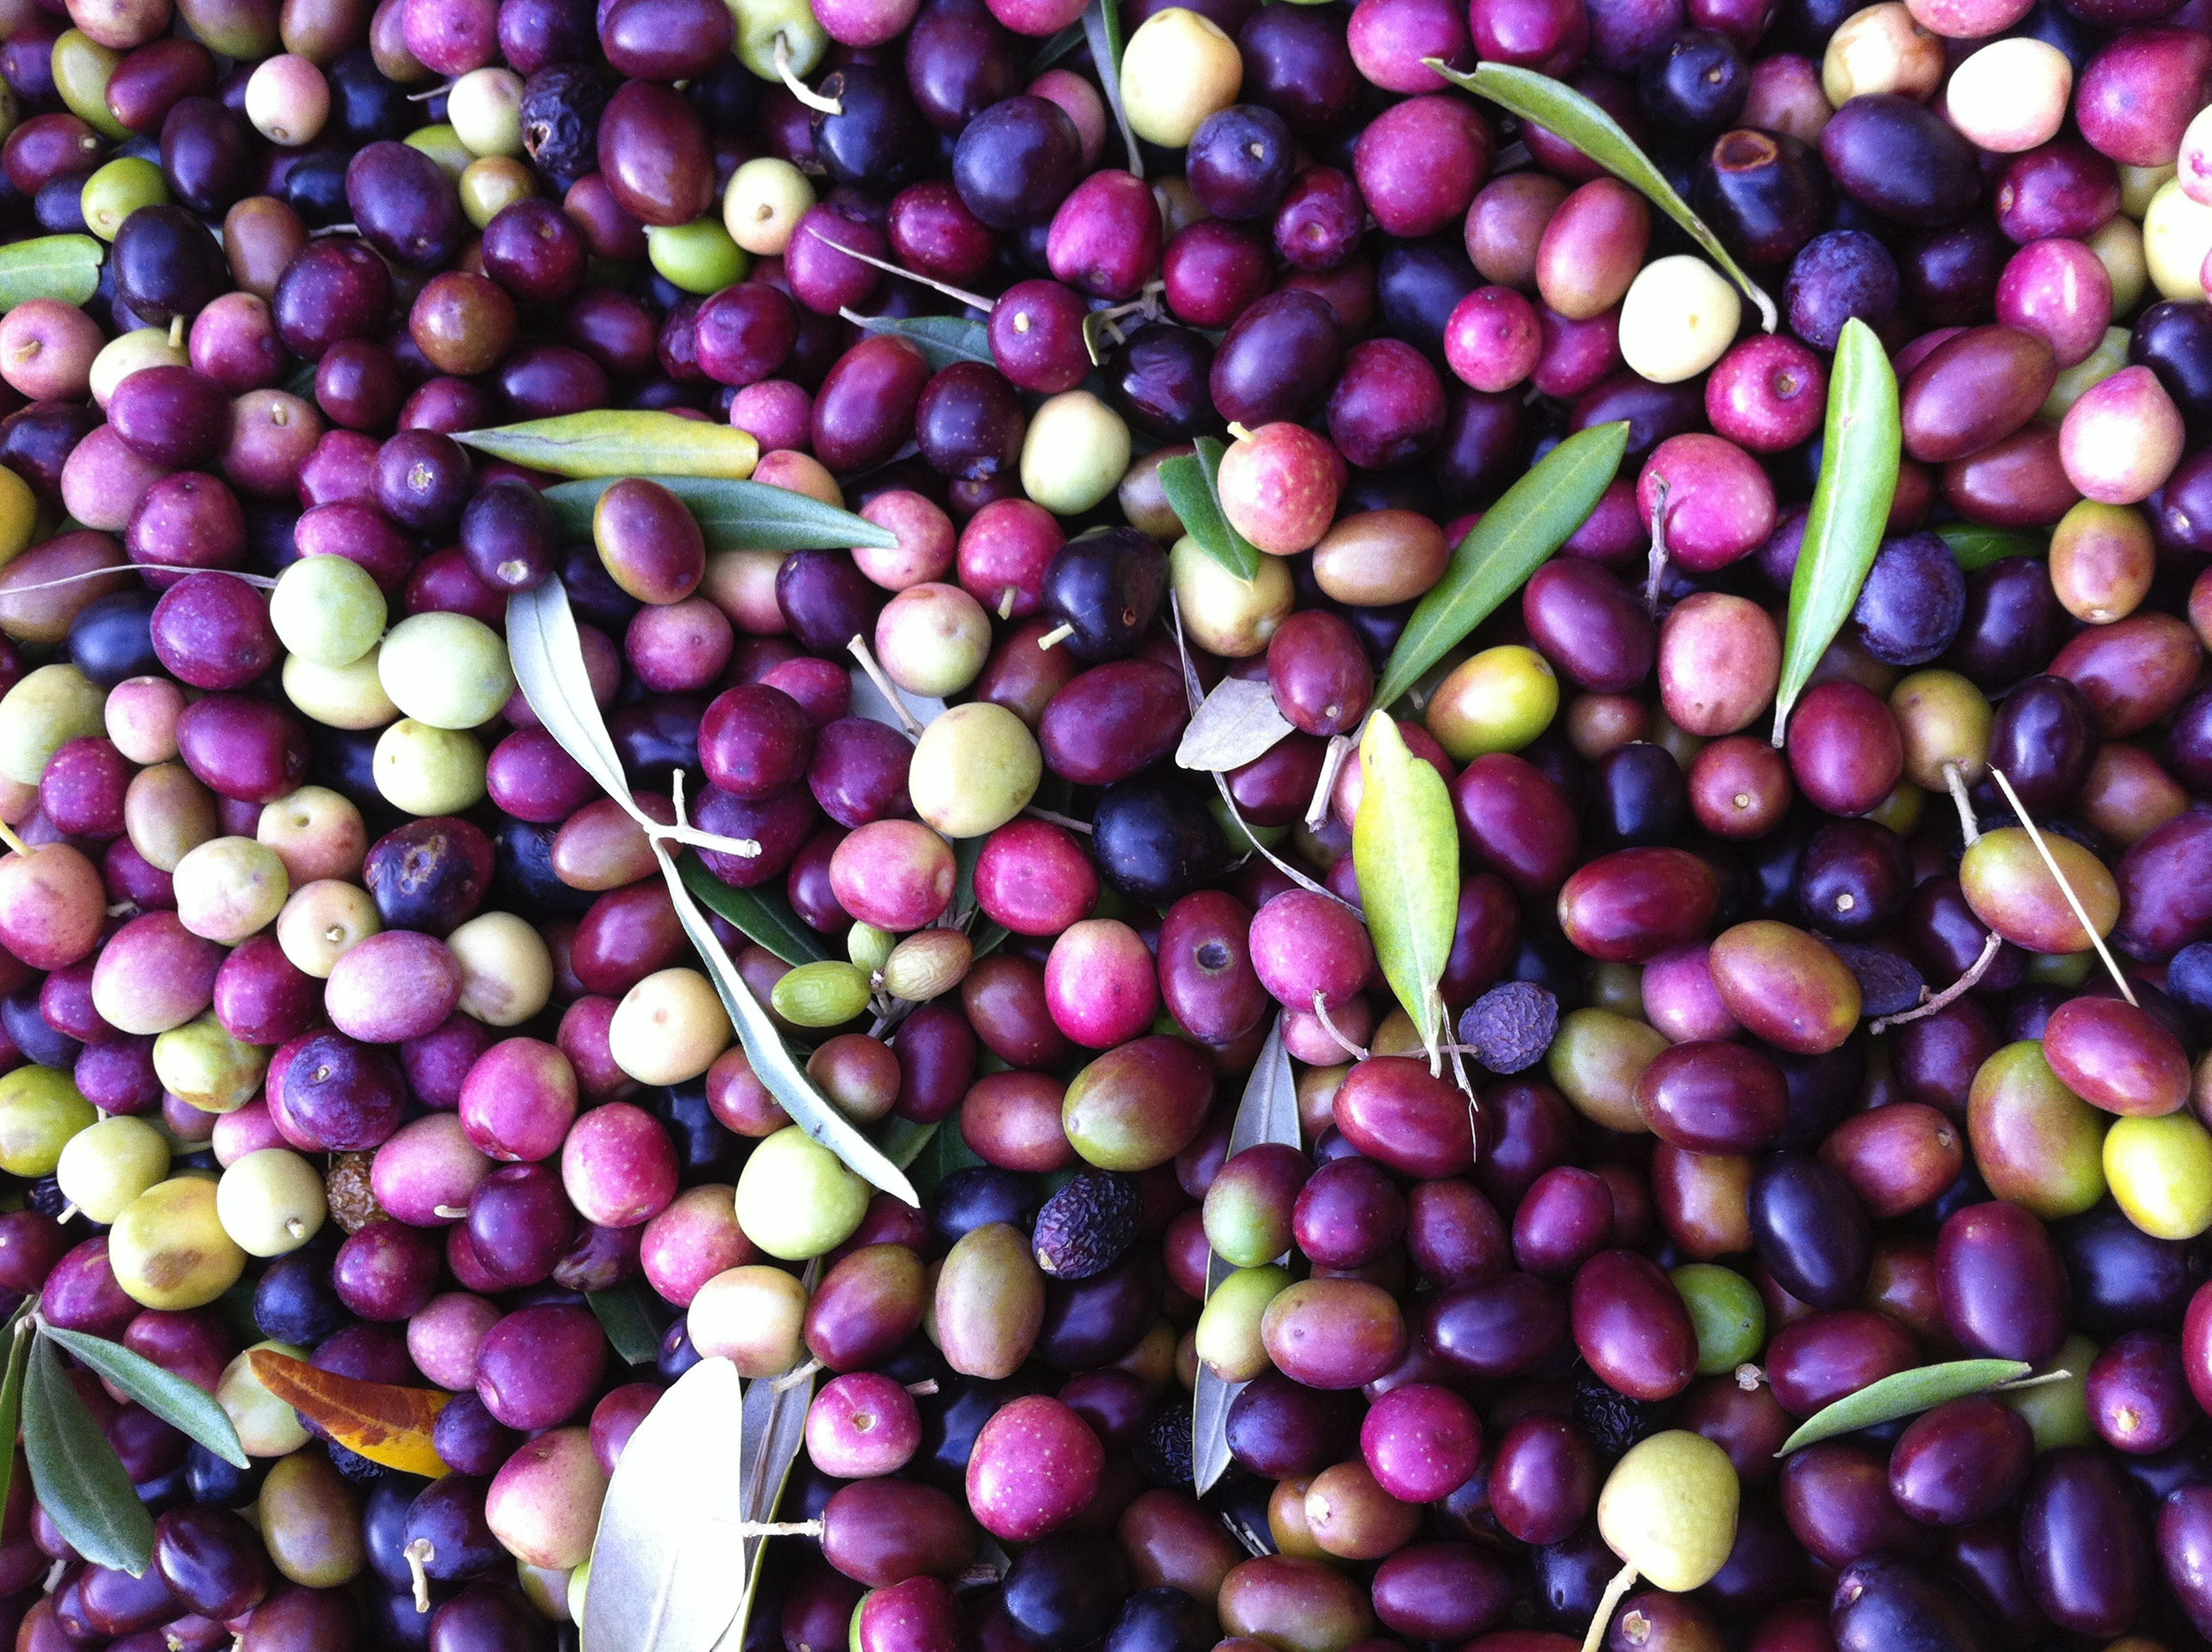 olive-harvest--the-local-olivastra-seggianese-olives_33054255250_o.jpg